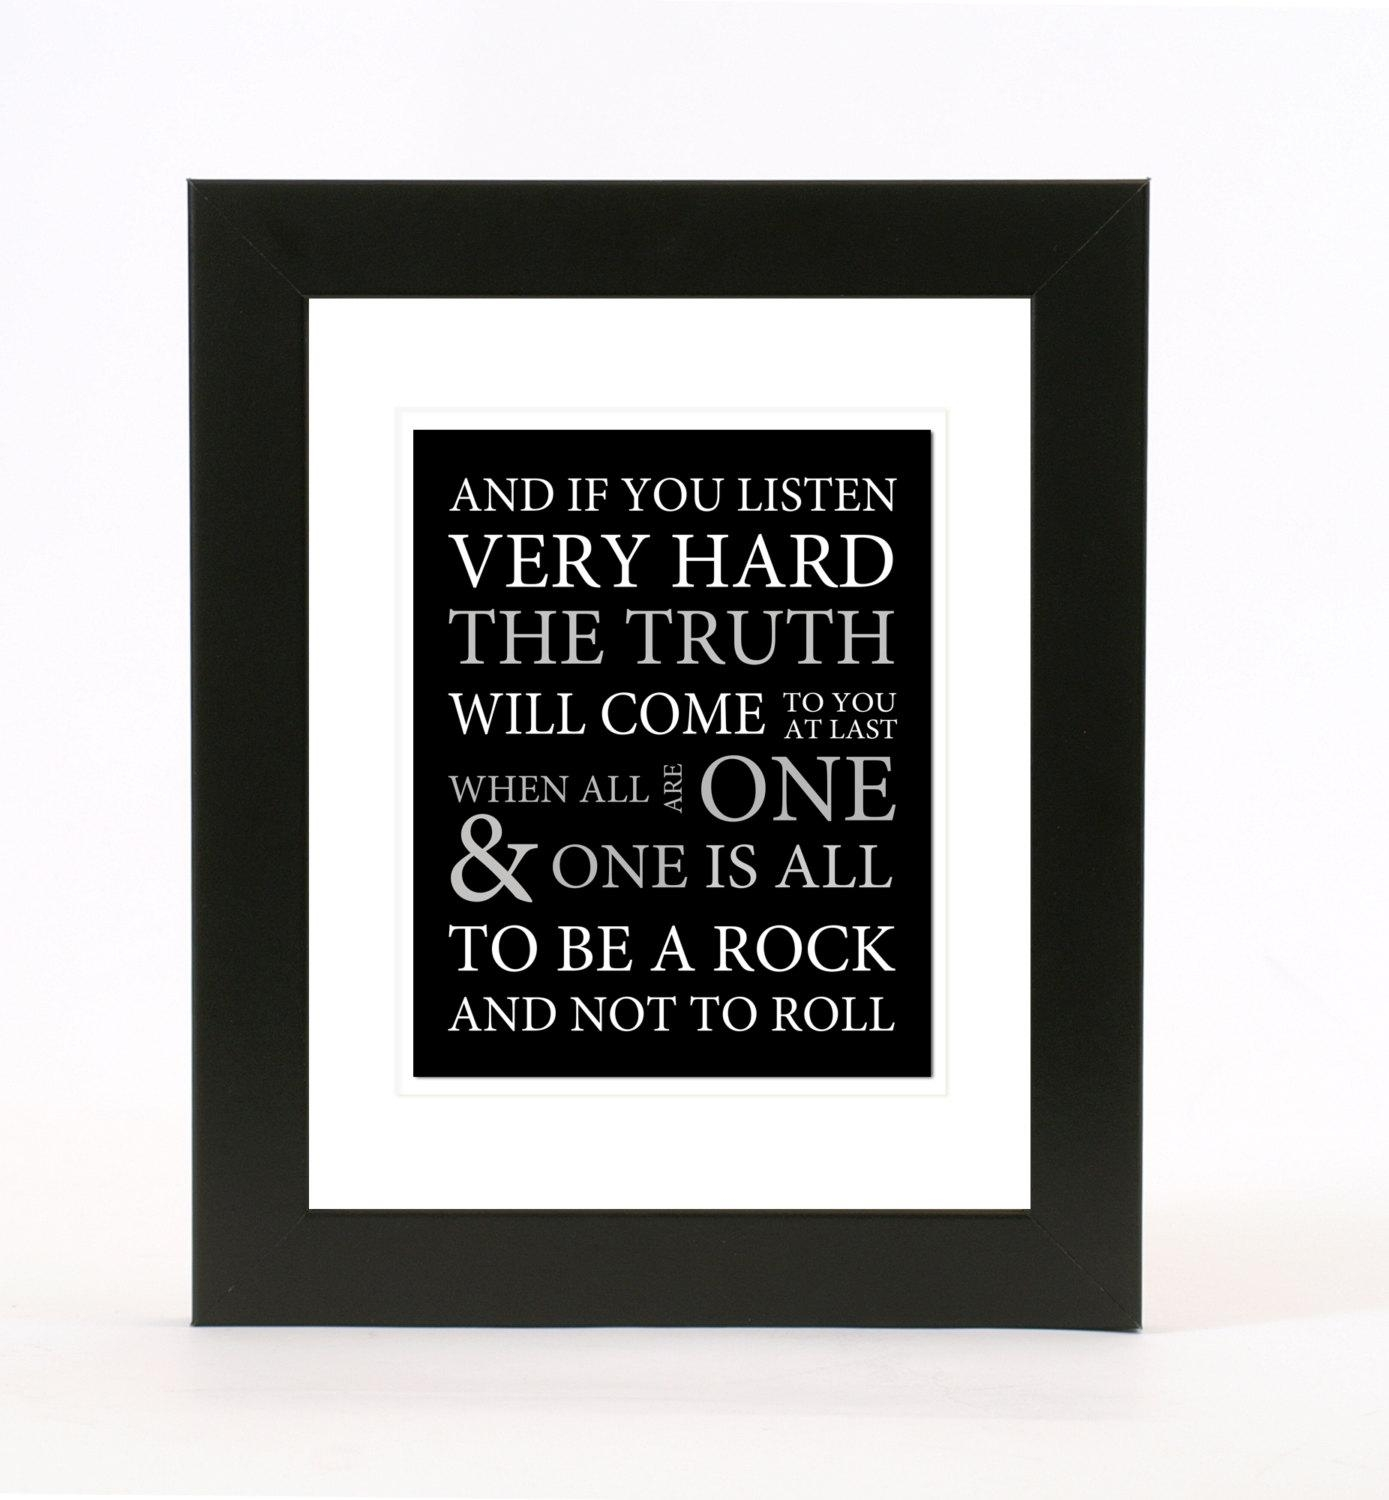 Led Zeppelin: Stairway To Heaven Lyrics Wall Art 8X10 Print For Led Zeppelin Wall Art (Image 13 of 20)